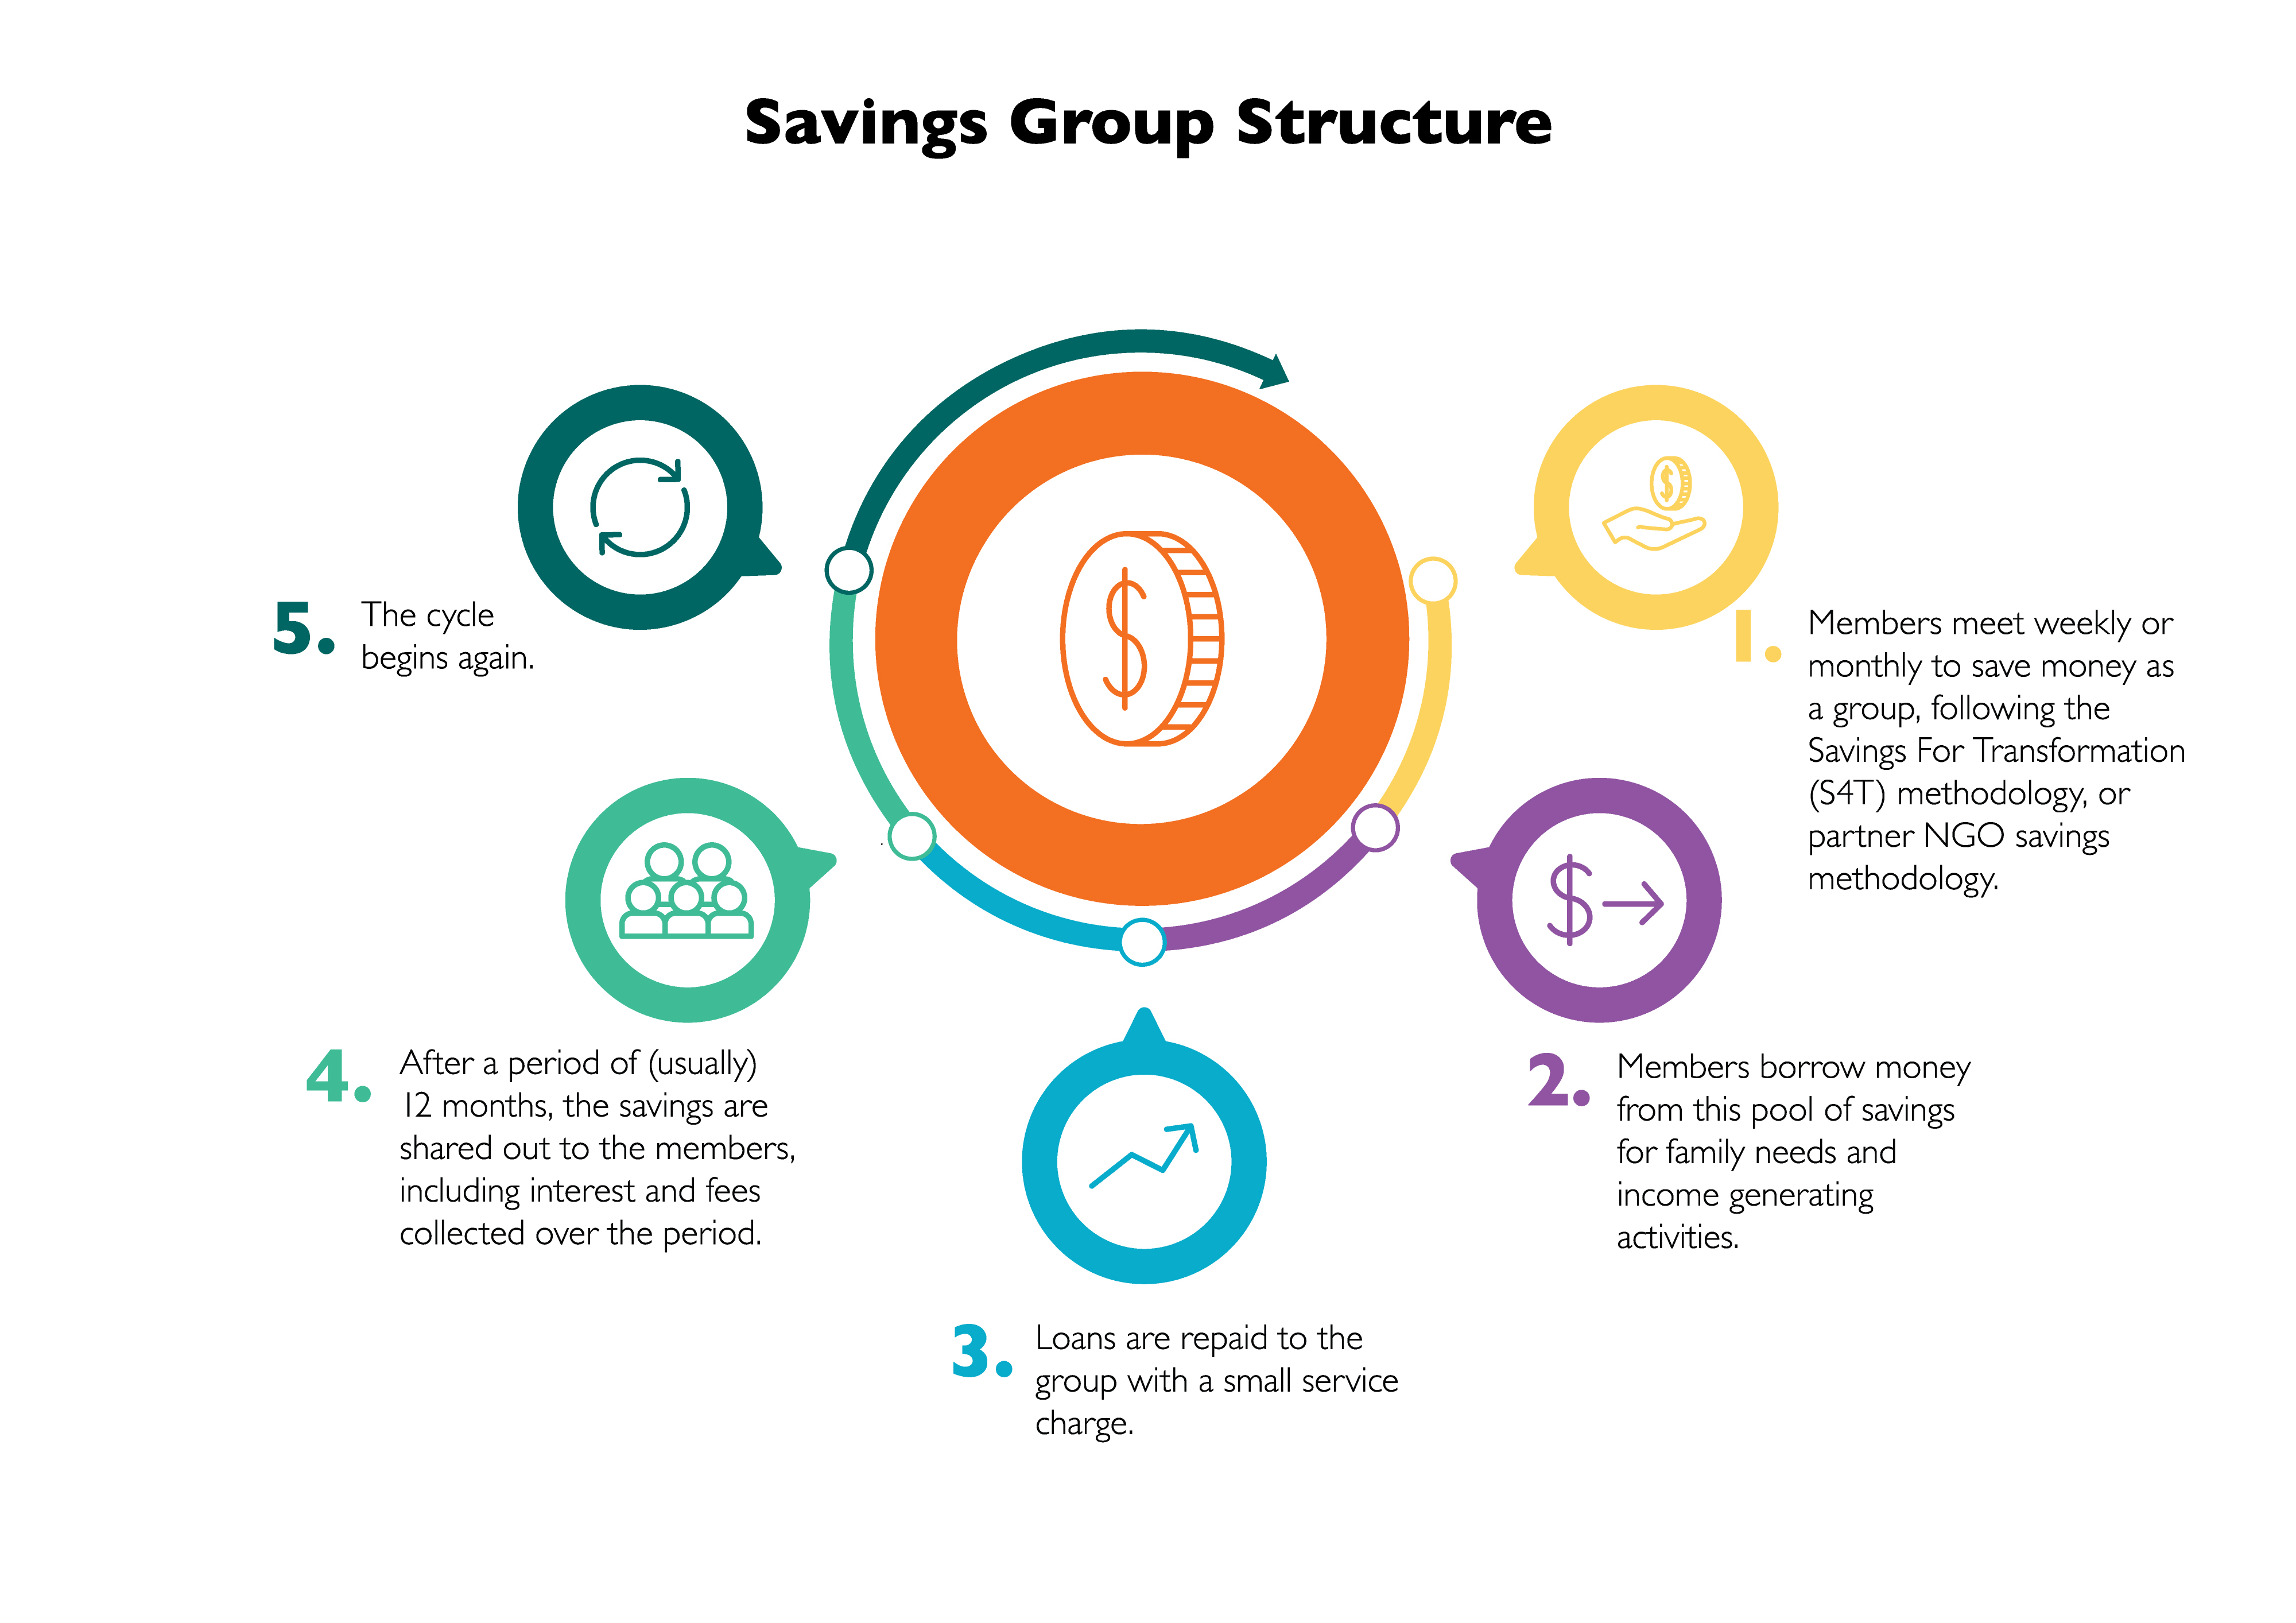 Savings Group Structure Graphic